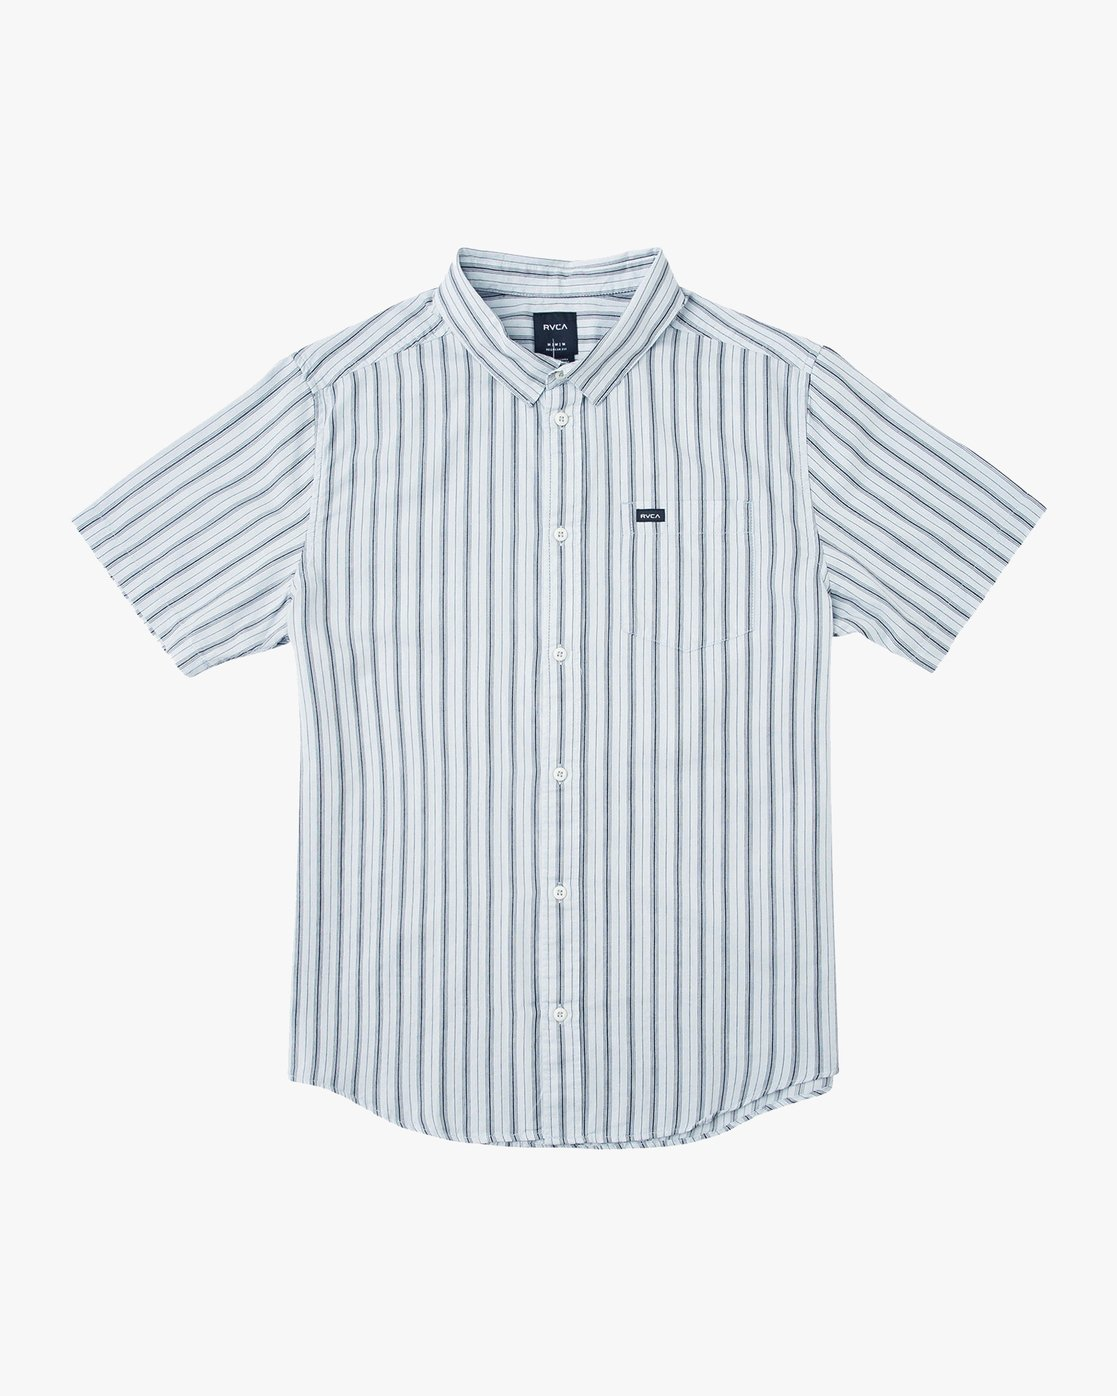 0 Shuffle Stripe Button-Up Shirt Blue M564URAS RVCA